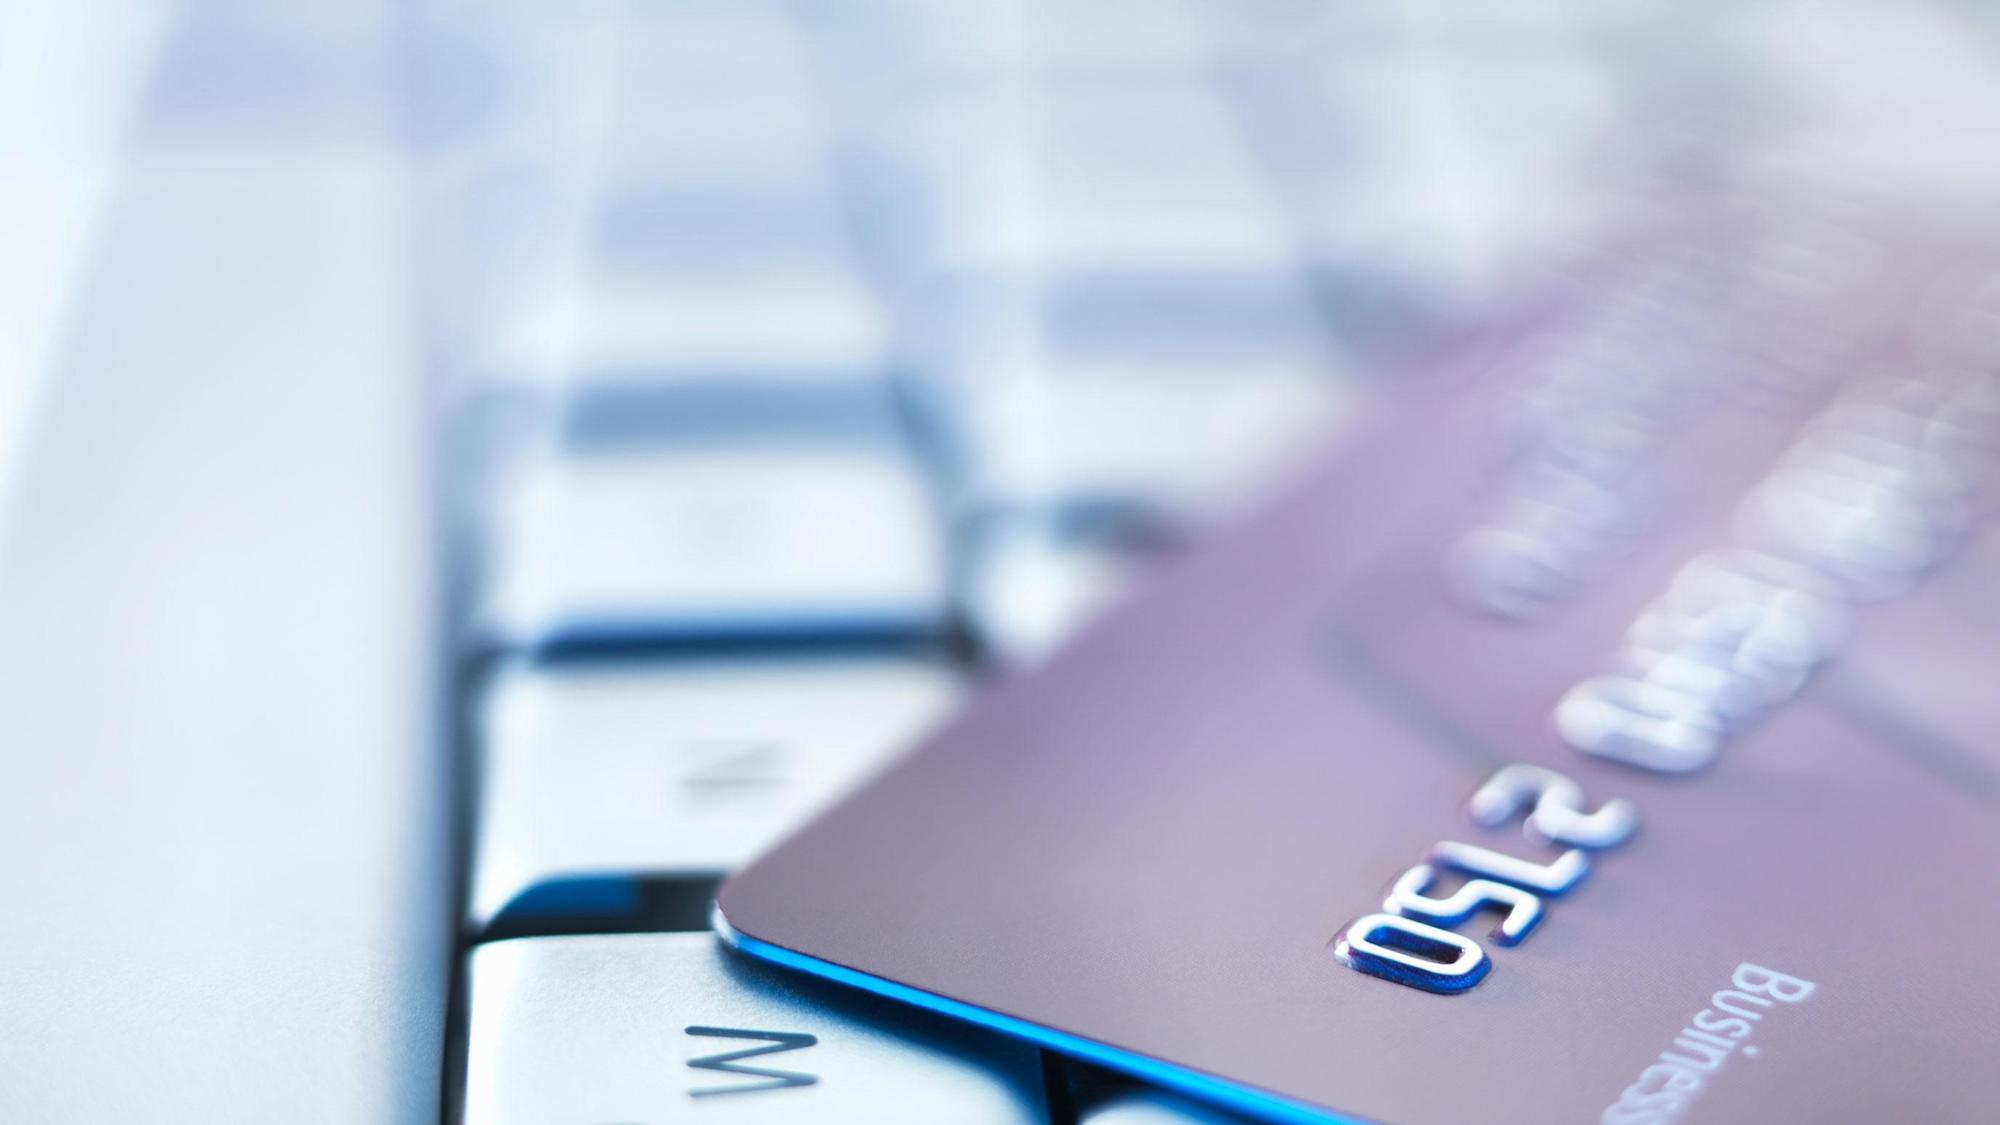 Corporate credit card platform Moss raises $25.5 million